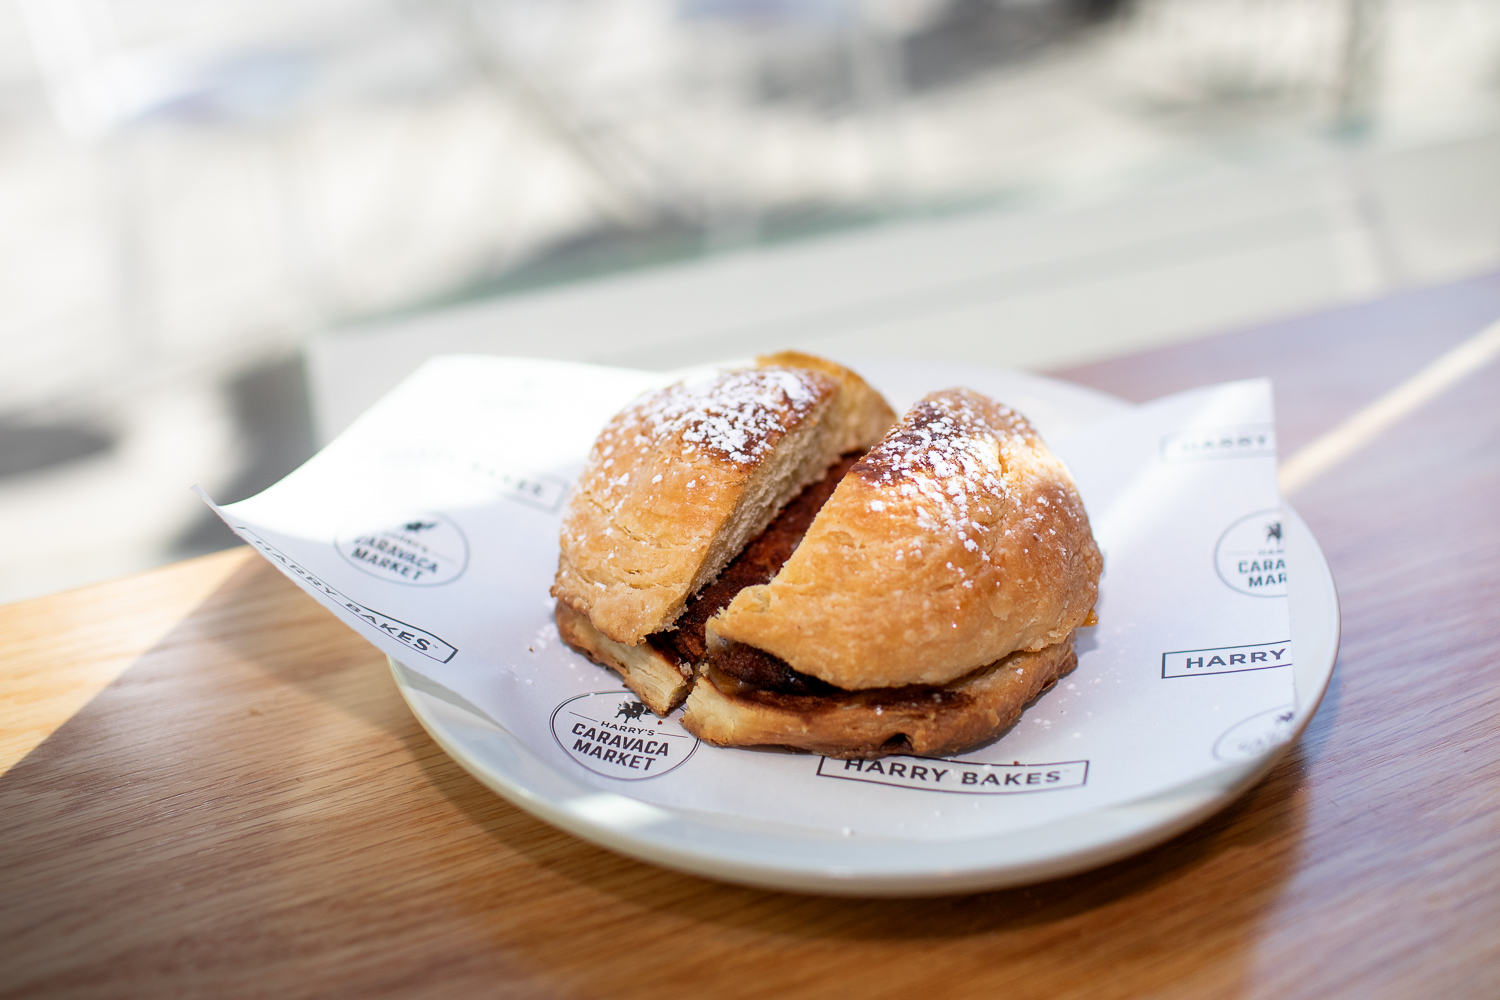 A chicken sandwich on Mallorca bread, topped with powdered sugar, at Harry Bakes Cafe.